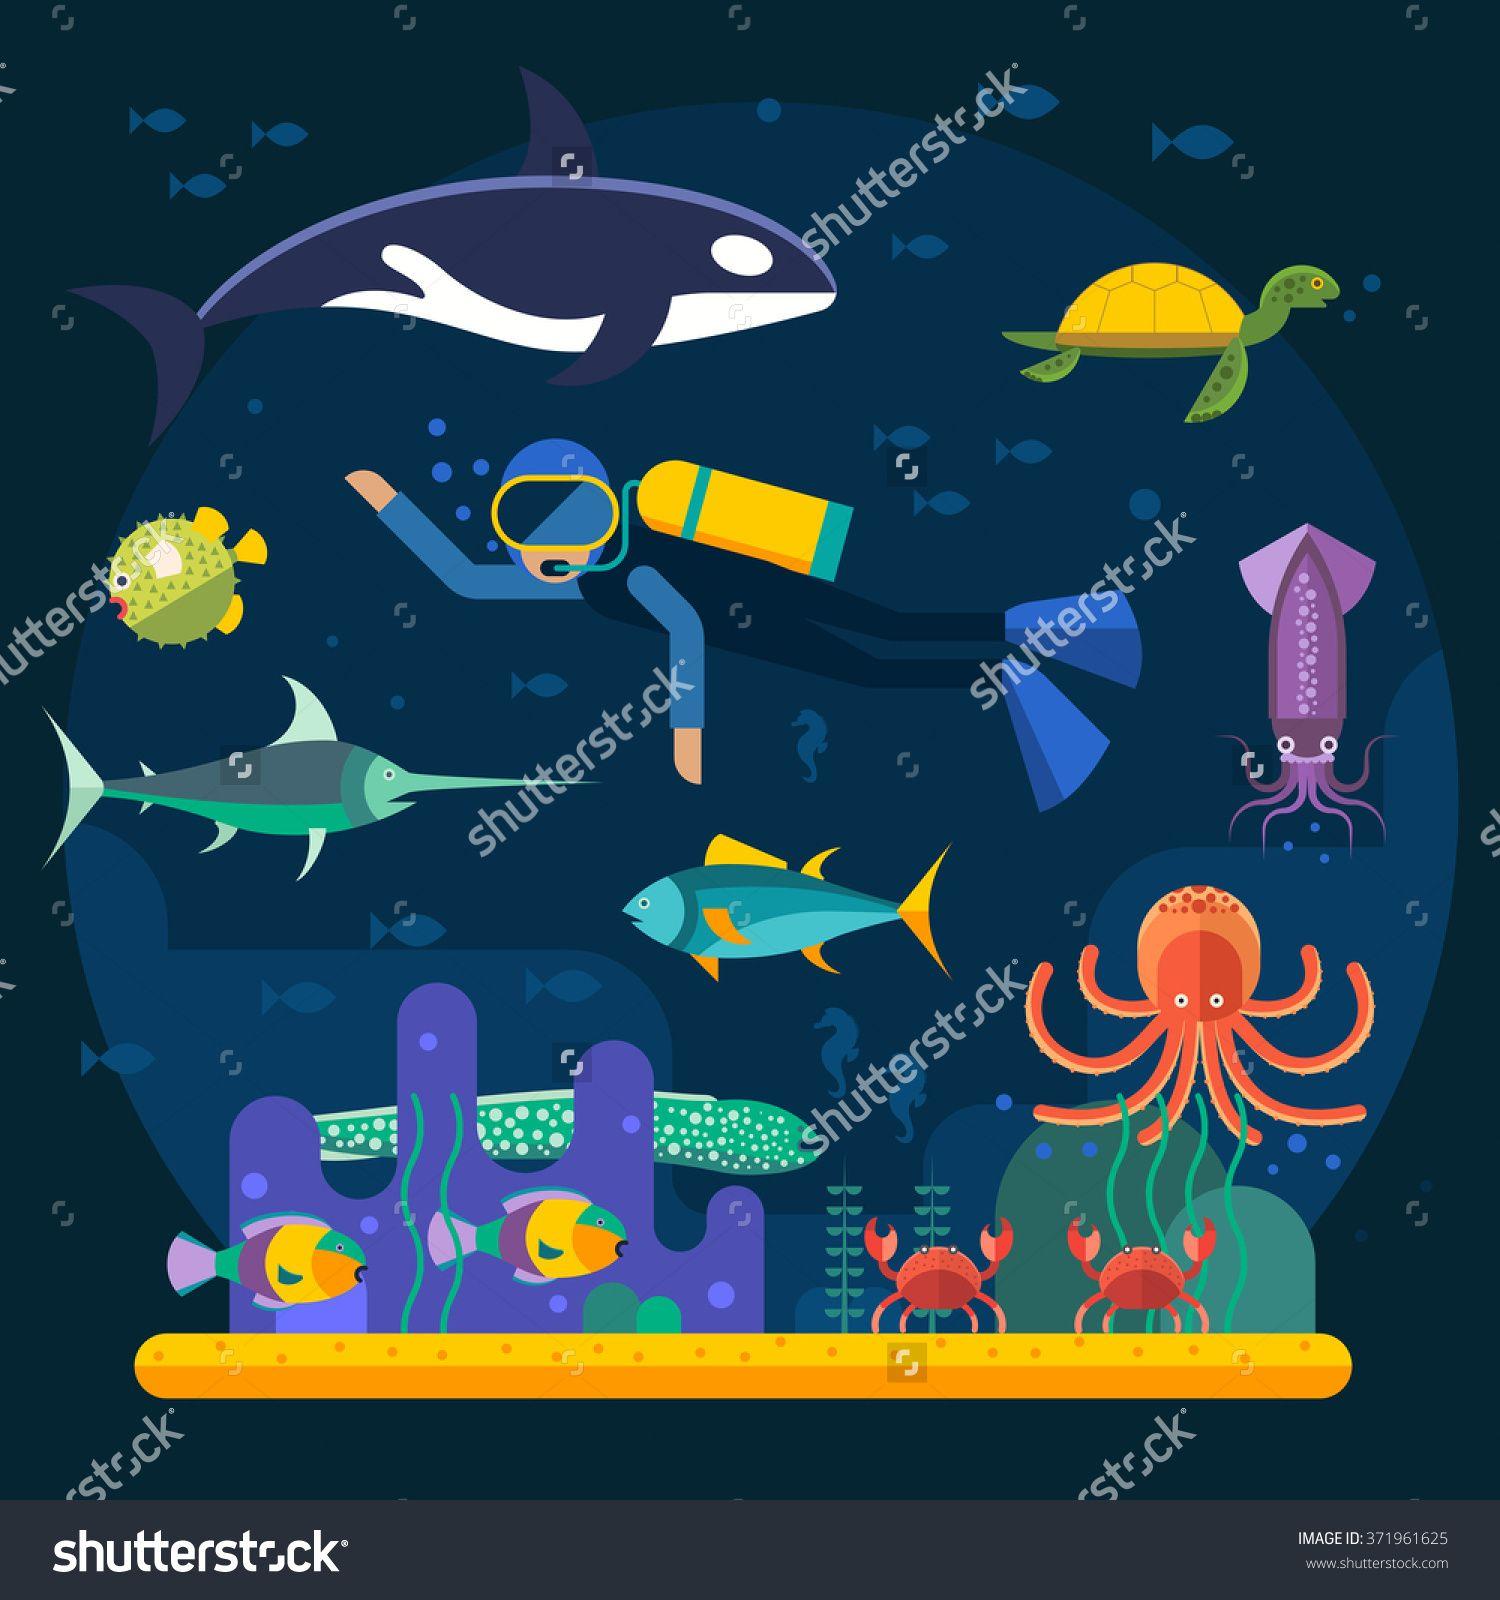 Scuba Diving With Fishes And Coral Reef Vector Illustration. Diver And Fishes Vector Illustration. Diving Travel Poster. Vacation Time, Activity Diving Man And Travel Concept - 371961625 : Shutterstock